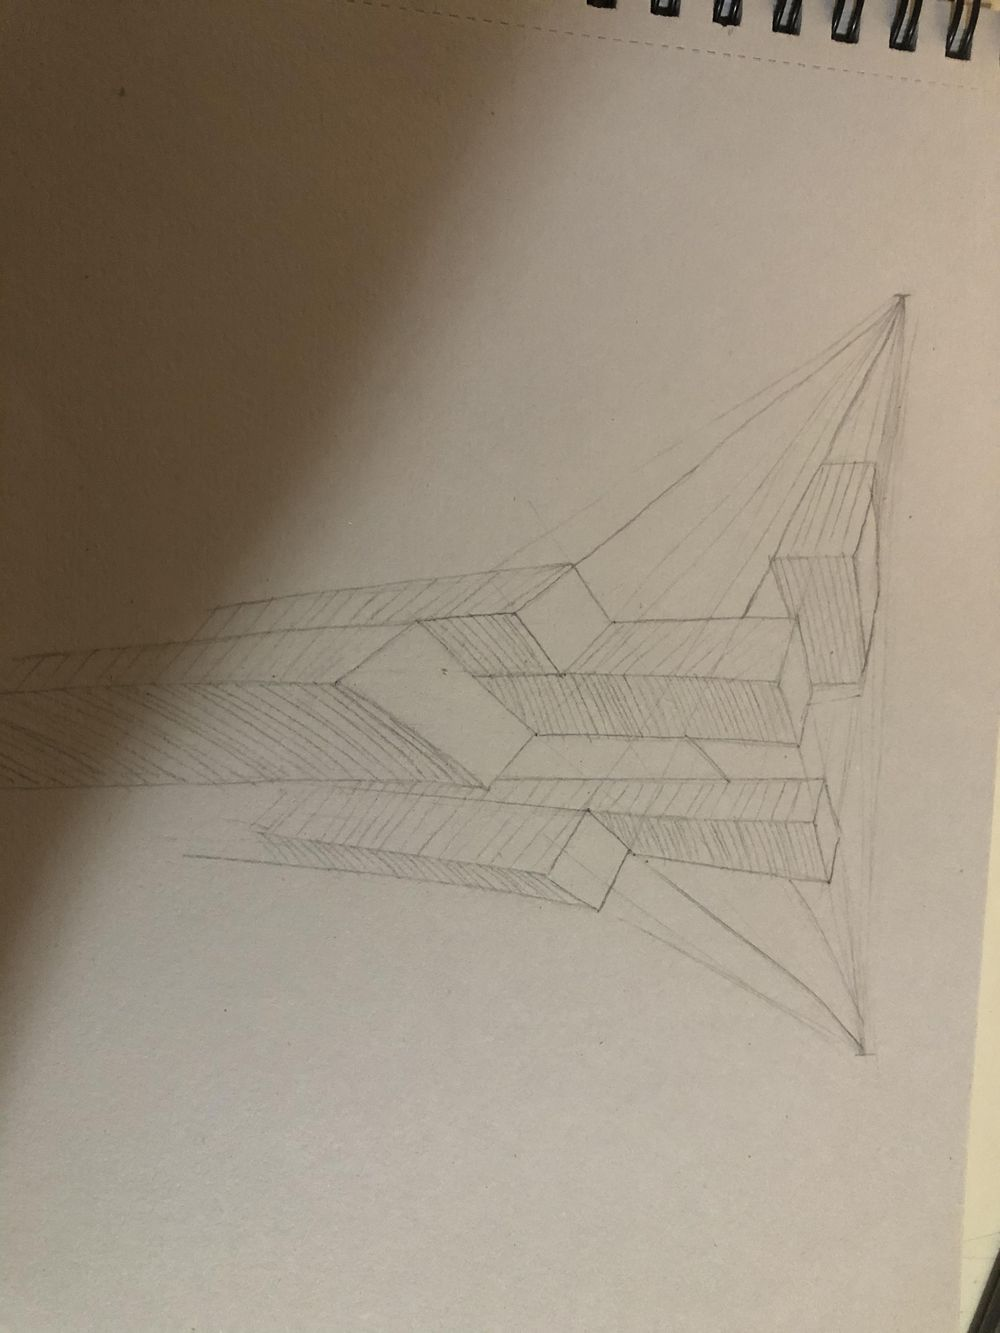 Forshortening perspective 1,2 and architectural perspective - image 1 - student project